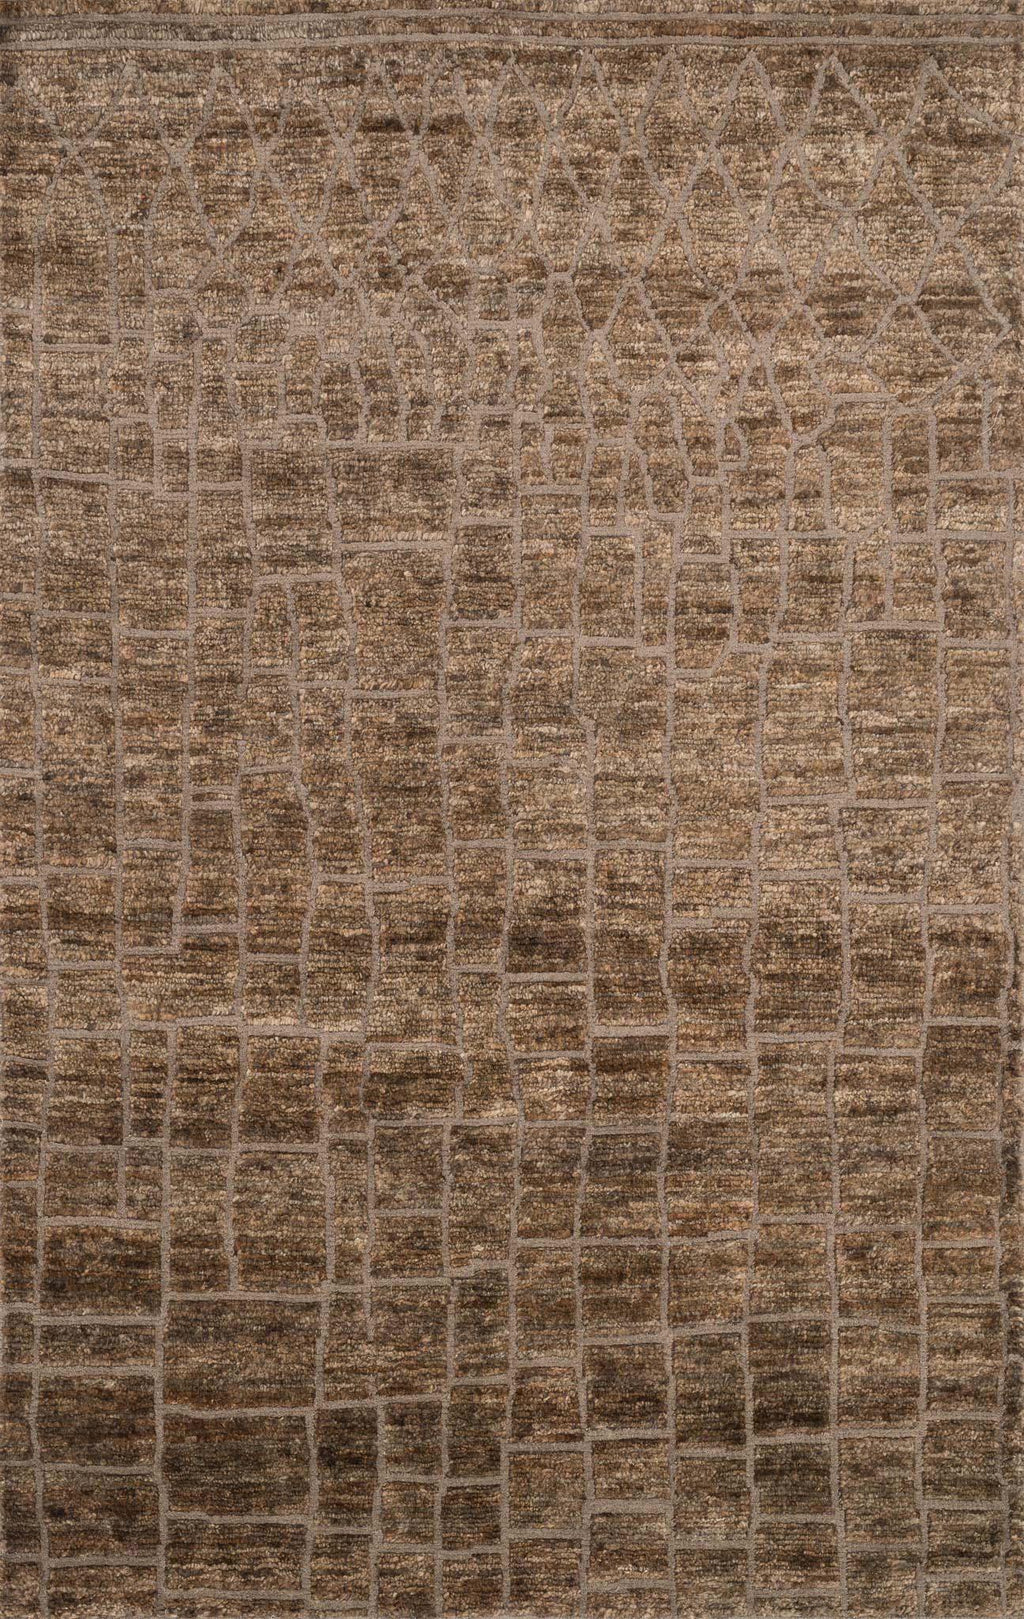 SAHARA Collection Rug  in  TAN Beige Medium Hand-Knotted Jute/Wool